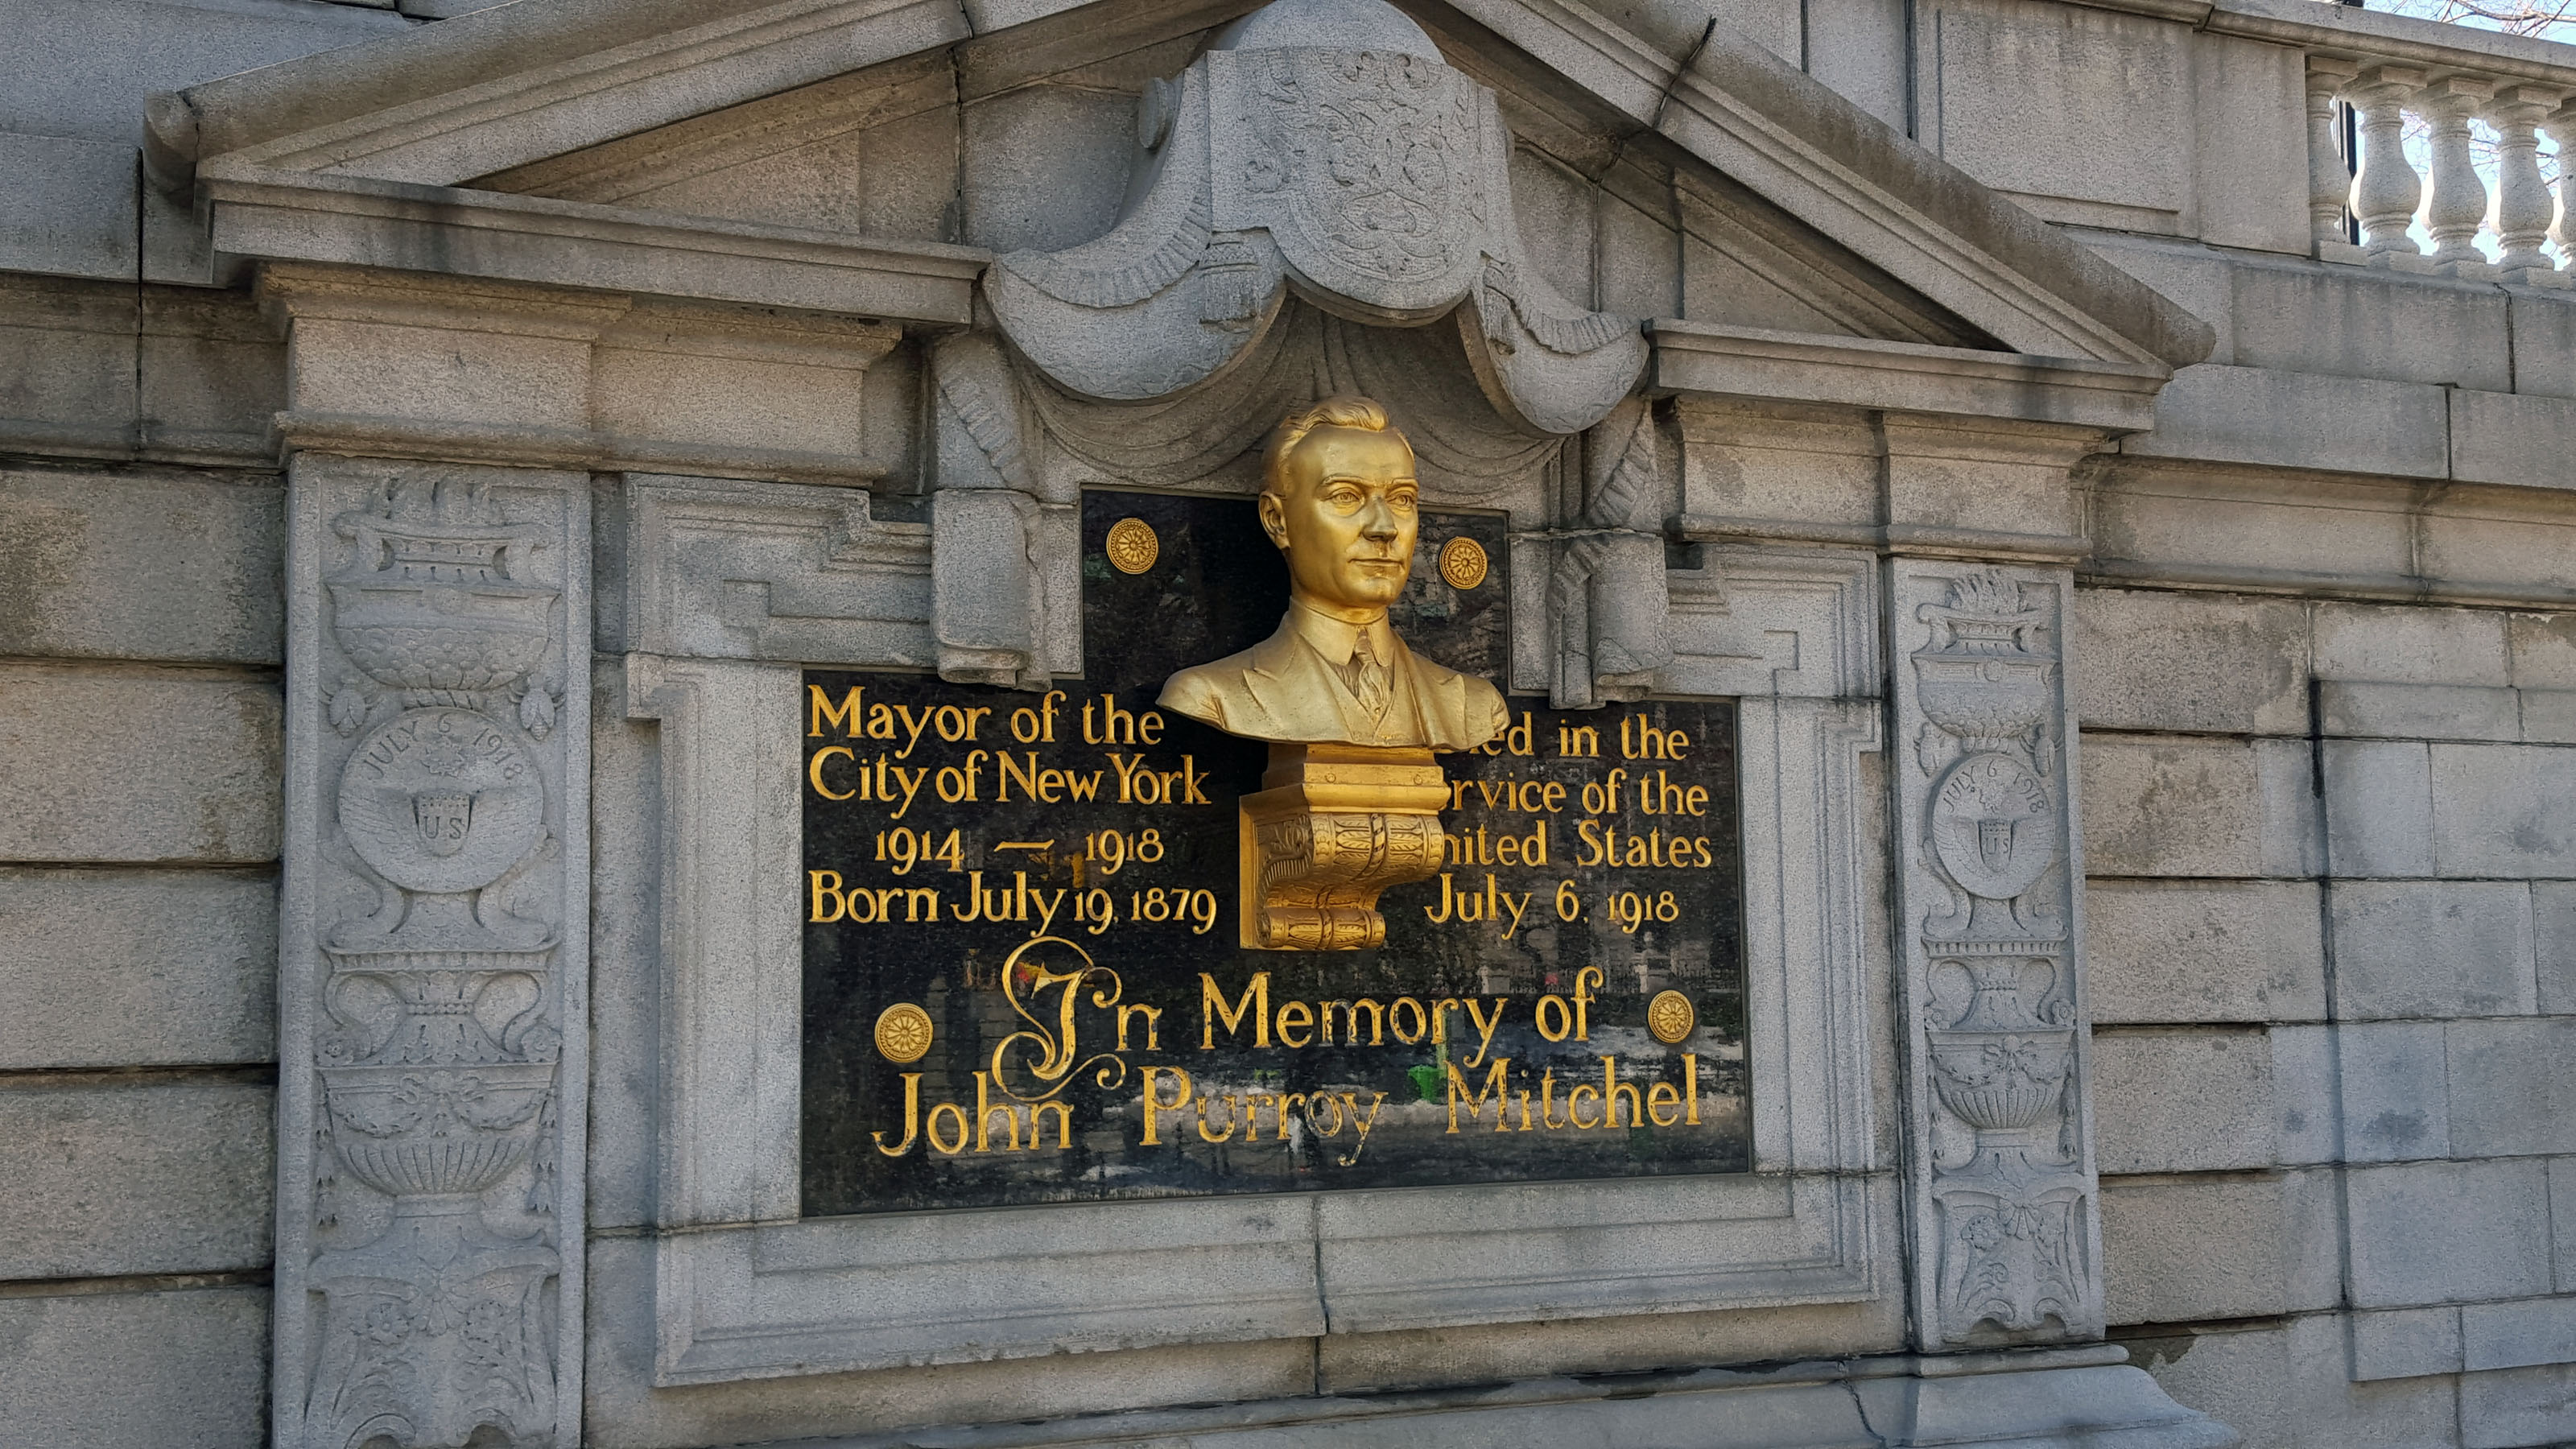 The John Purroy Mitchel Monument